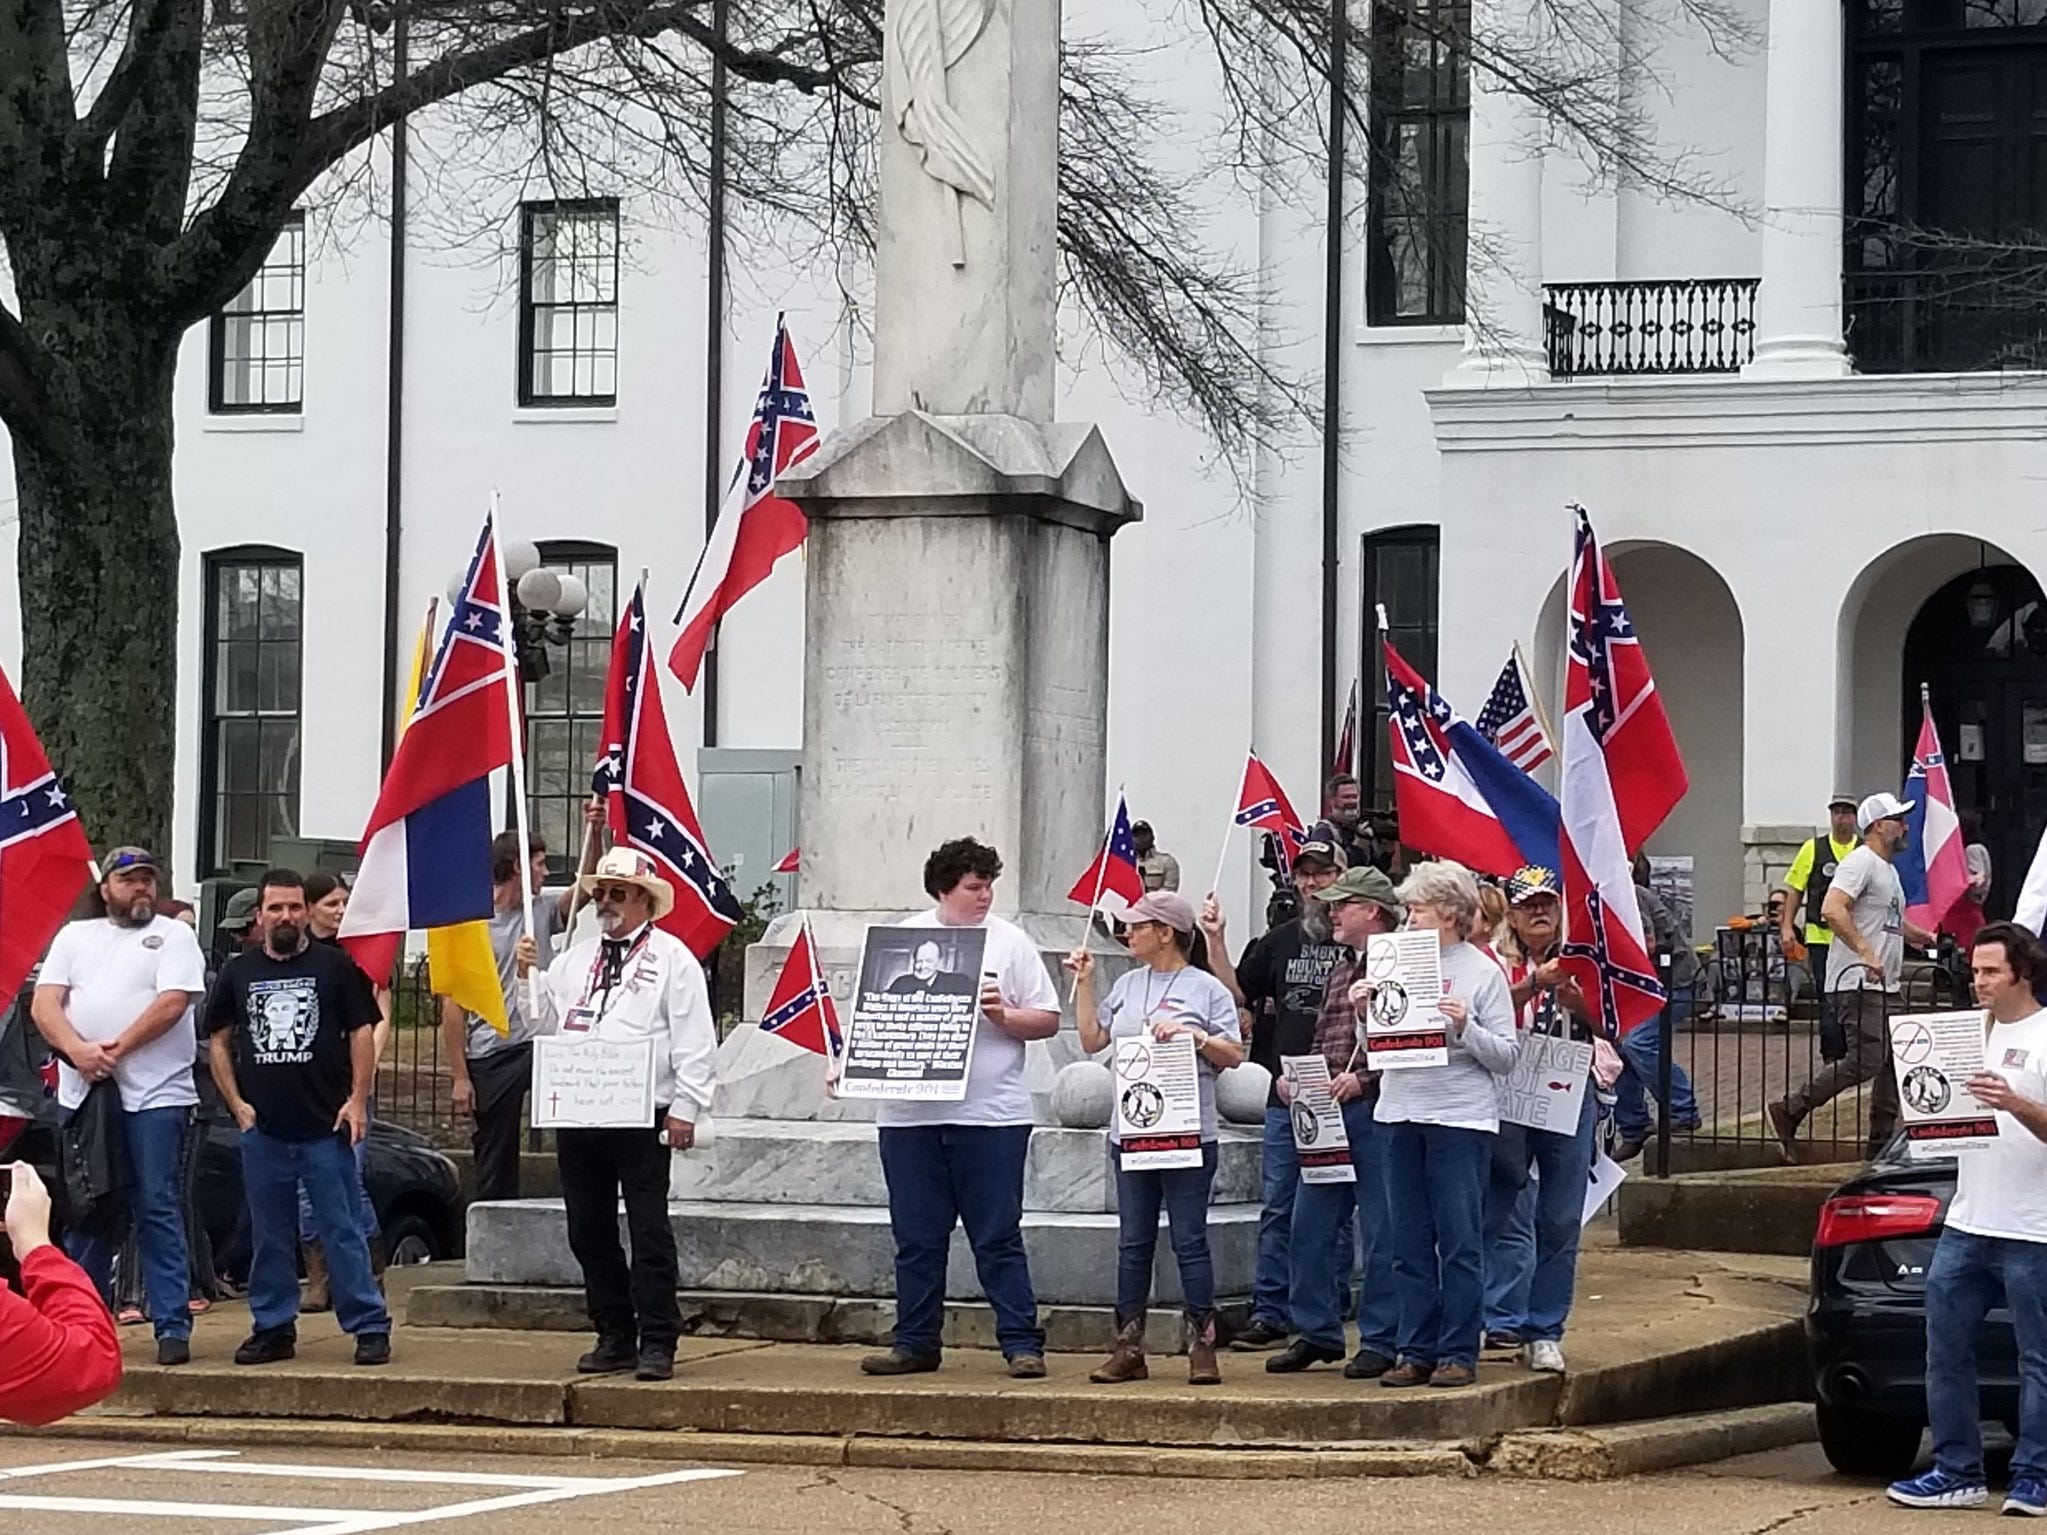 Two Pro-Confederate groups organized a rally in Oxford that started at The Square before marching to a memorial to an unknown Confederate soldier located on the campus of the University of Mississippi on Saturday, Feb. 23, 2019.